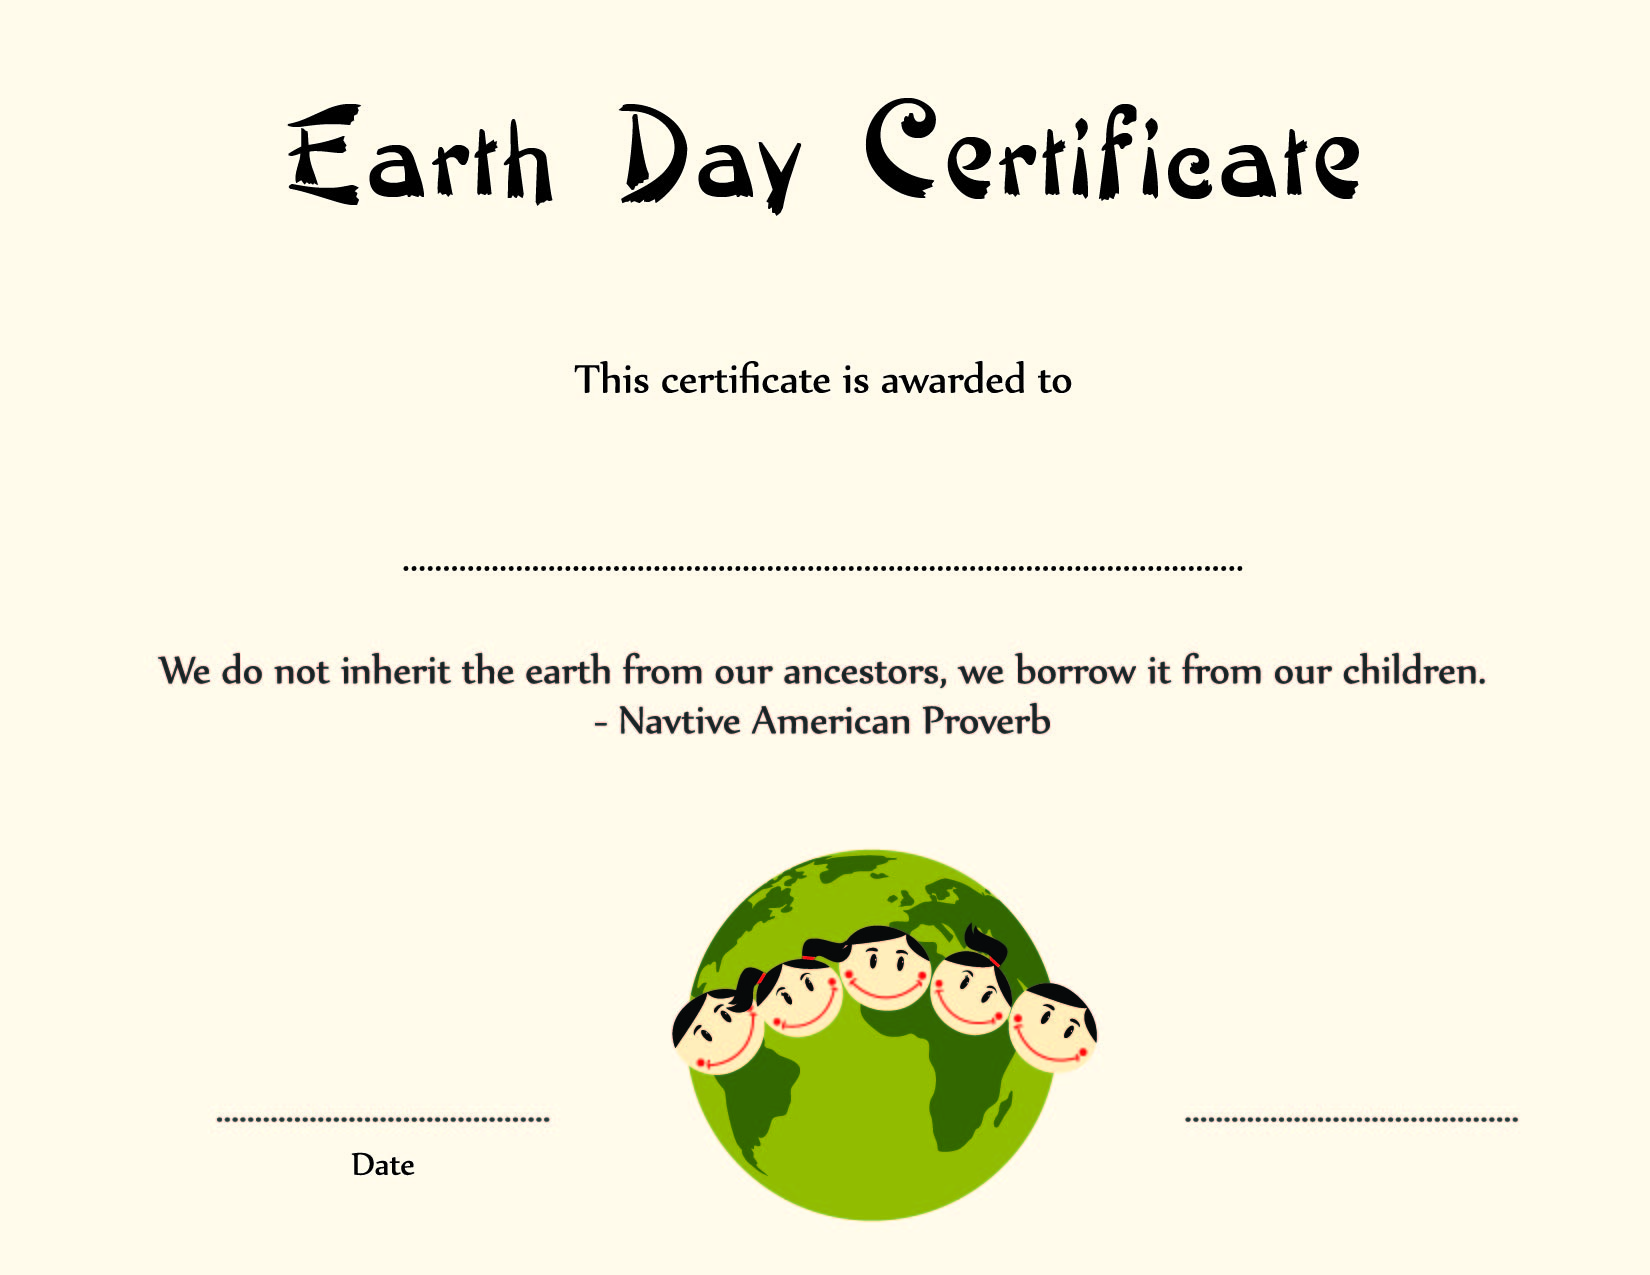 Earth day certificate template publisher choice image certificate earth day award certificate template yadclub choice image yelopaper Image collections